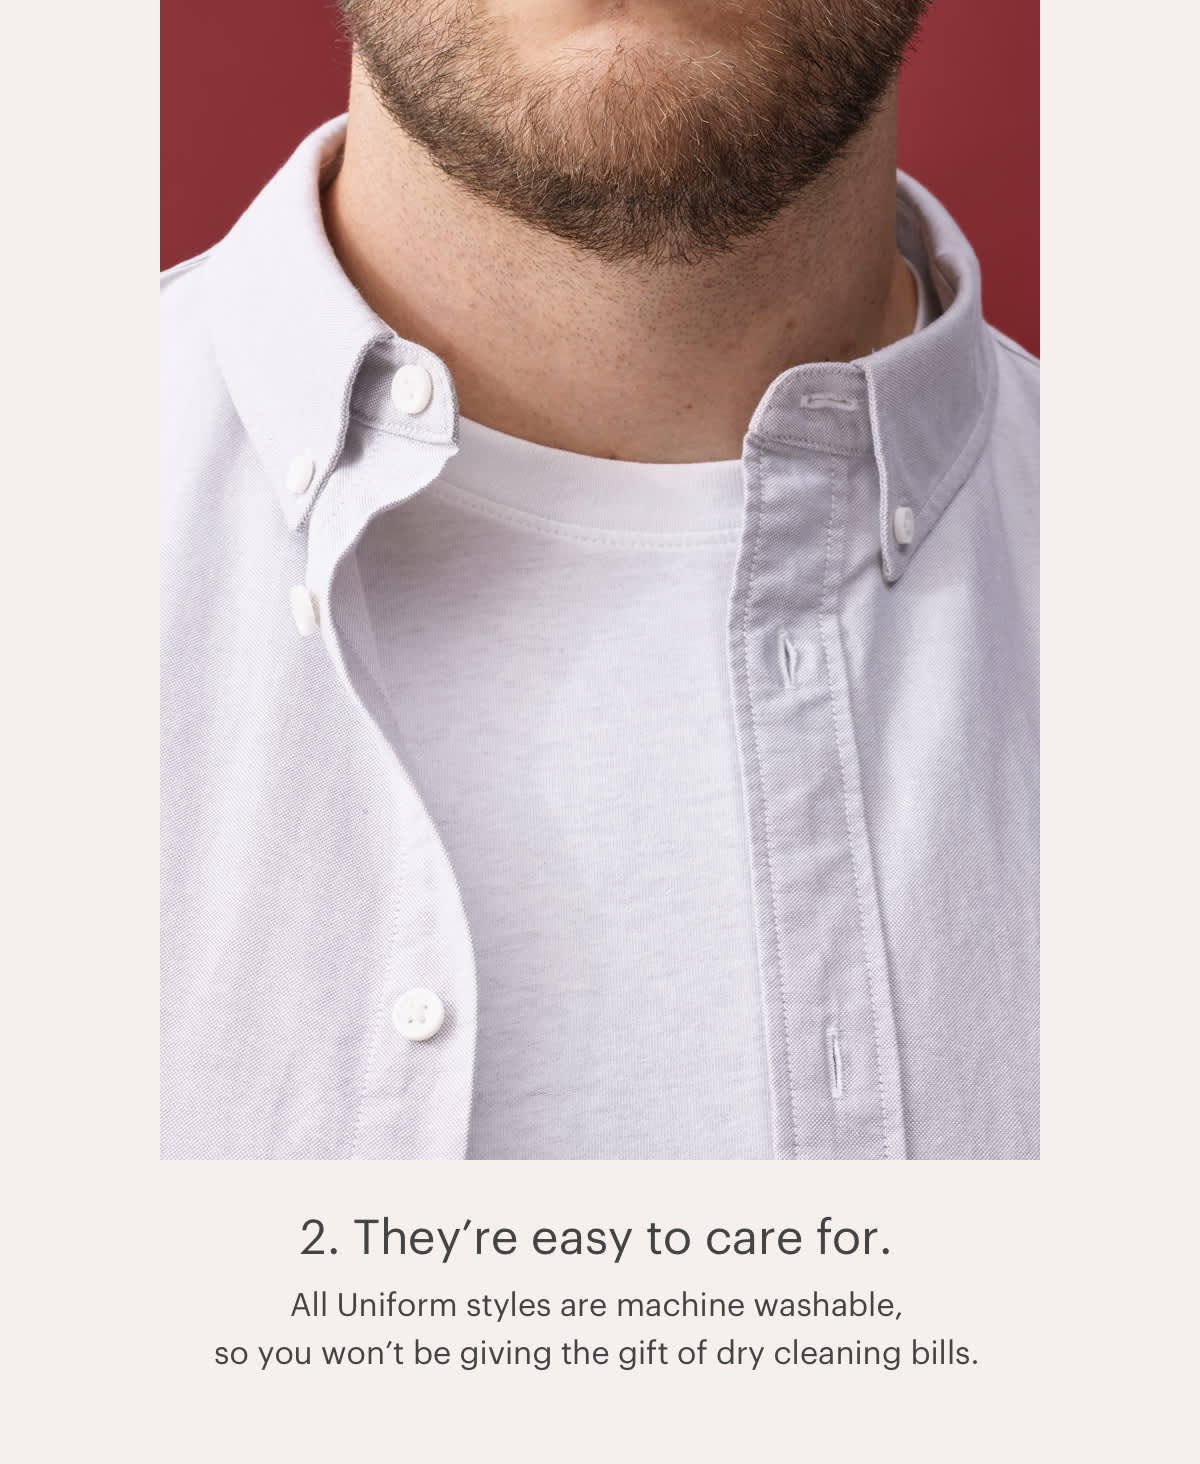 2. They're easy to care for.